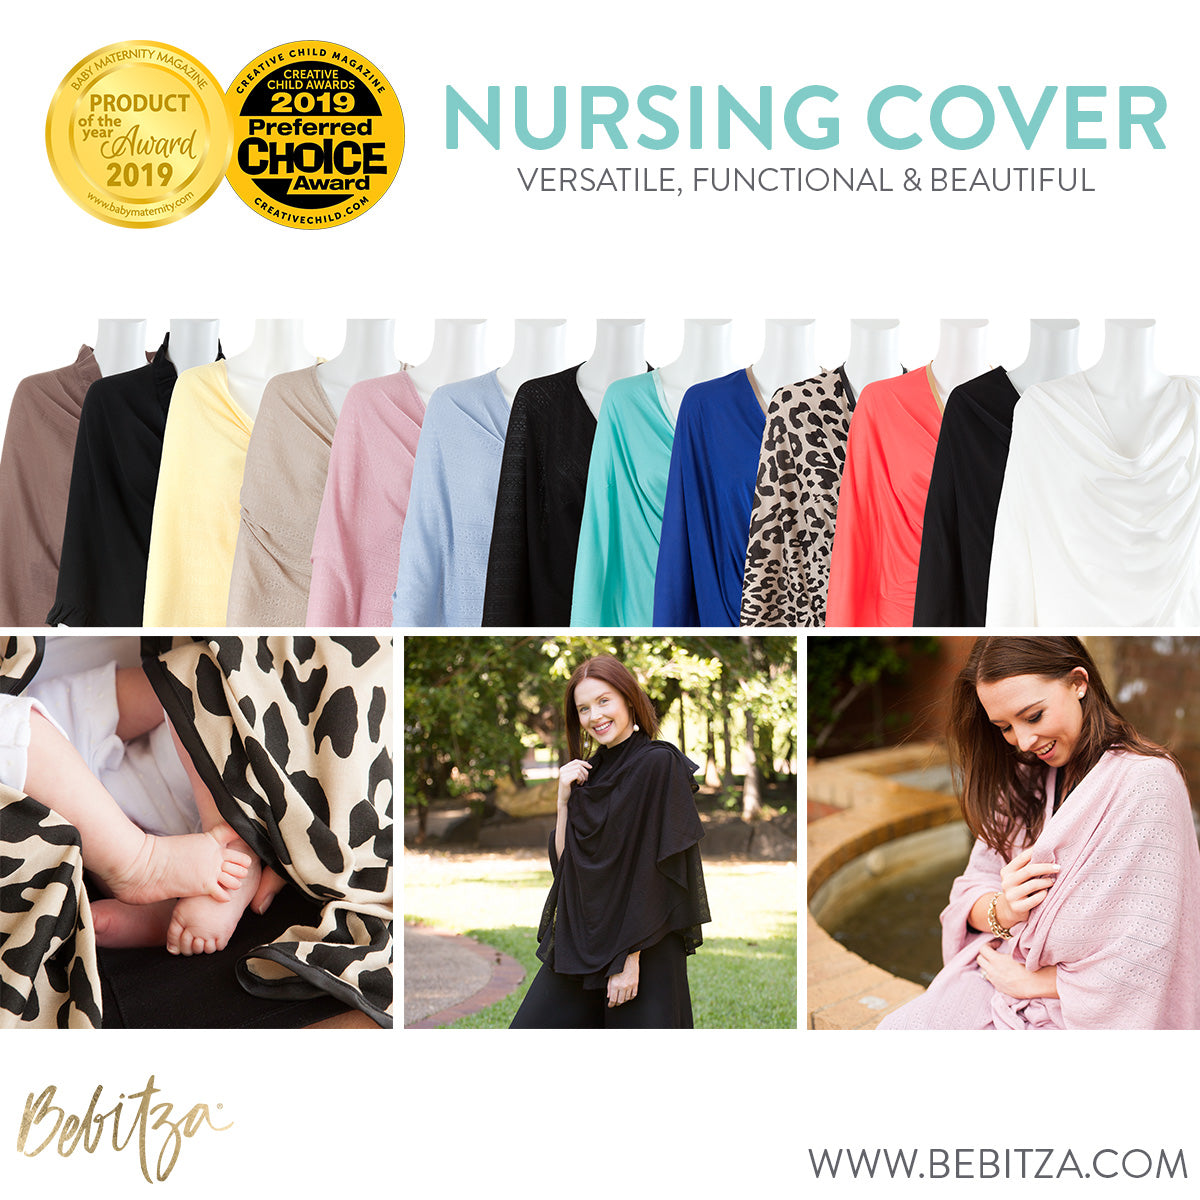 Bebitza's versatile, functional and beautiful range of Nursing Covers have won two awards.